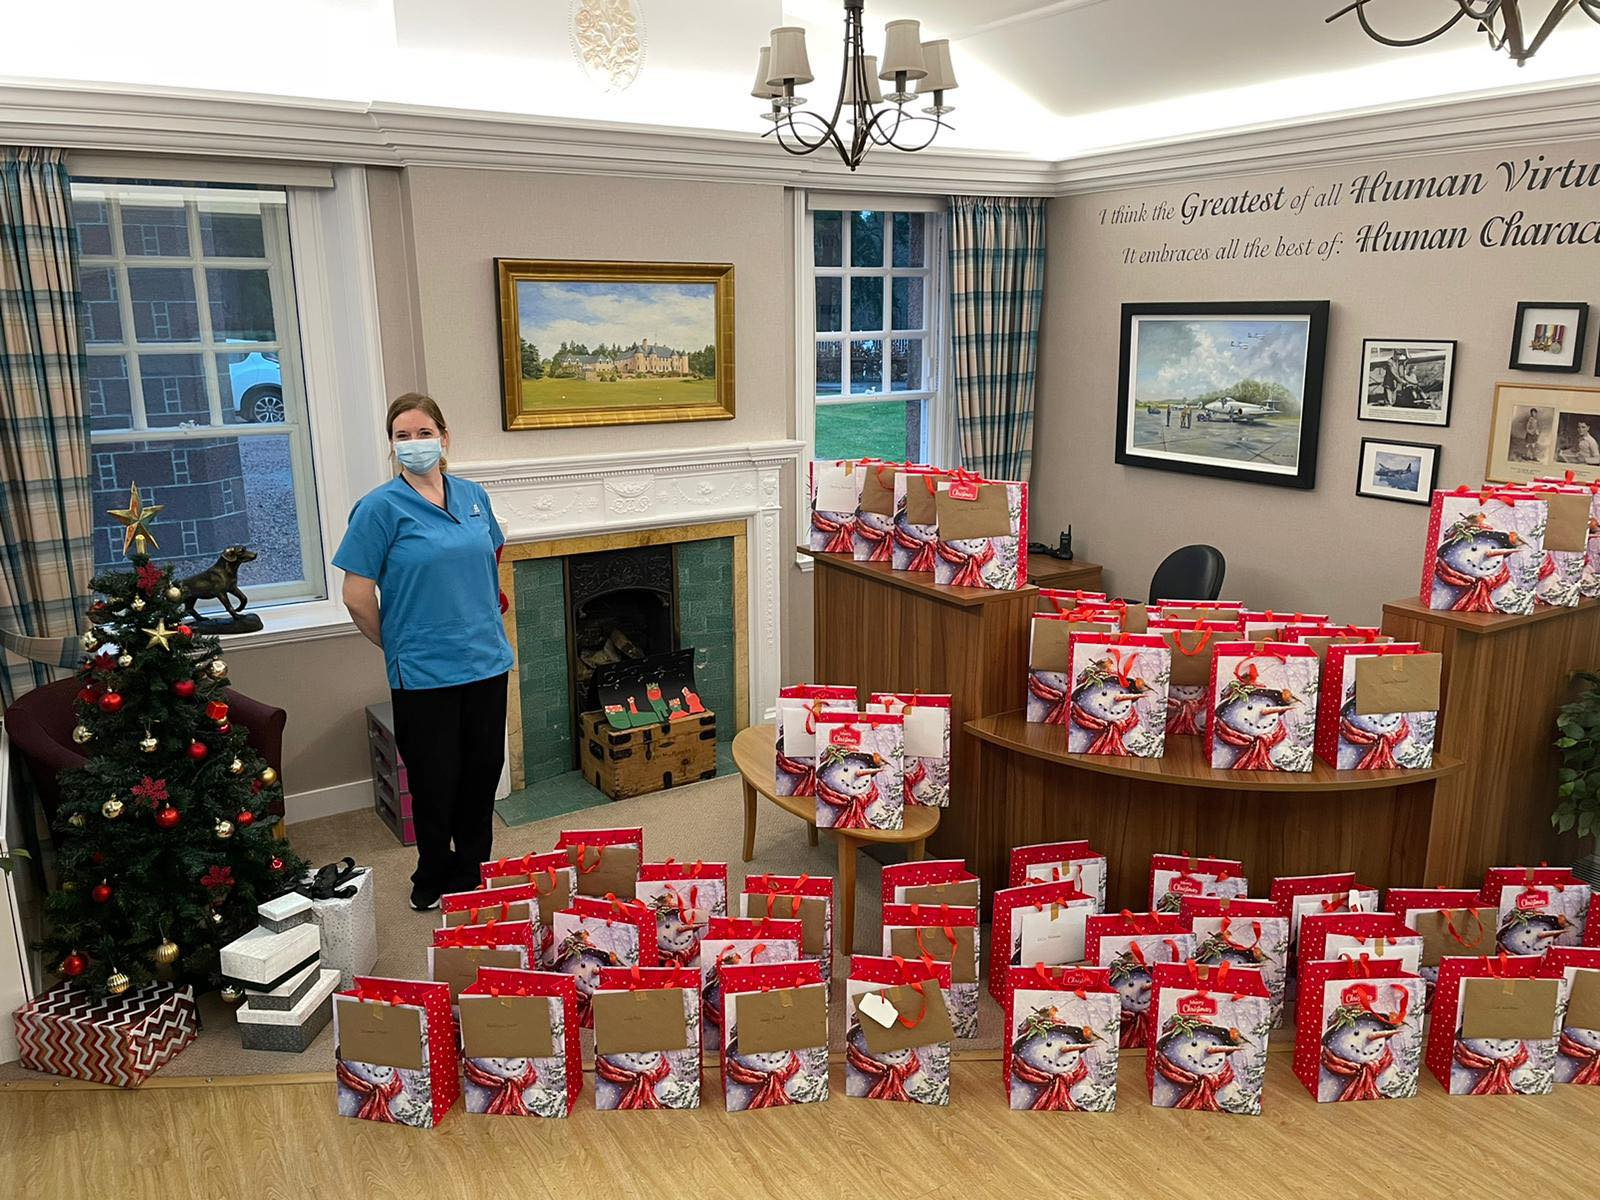 Alastrean residents are delighted with kind Christmas gifts from local community